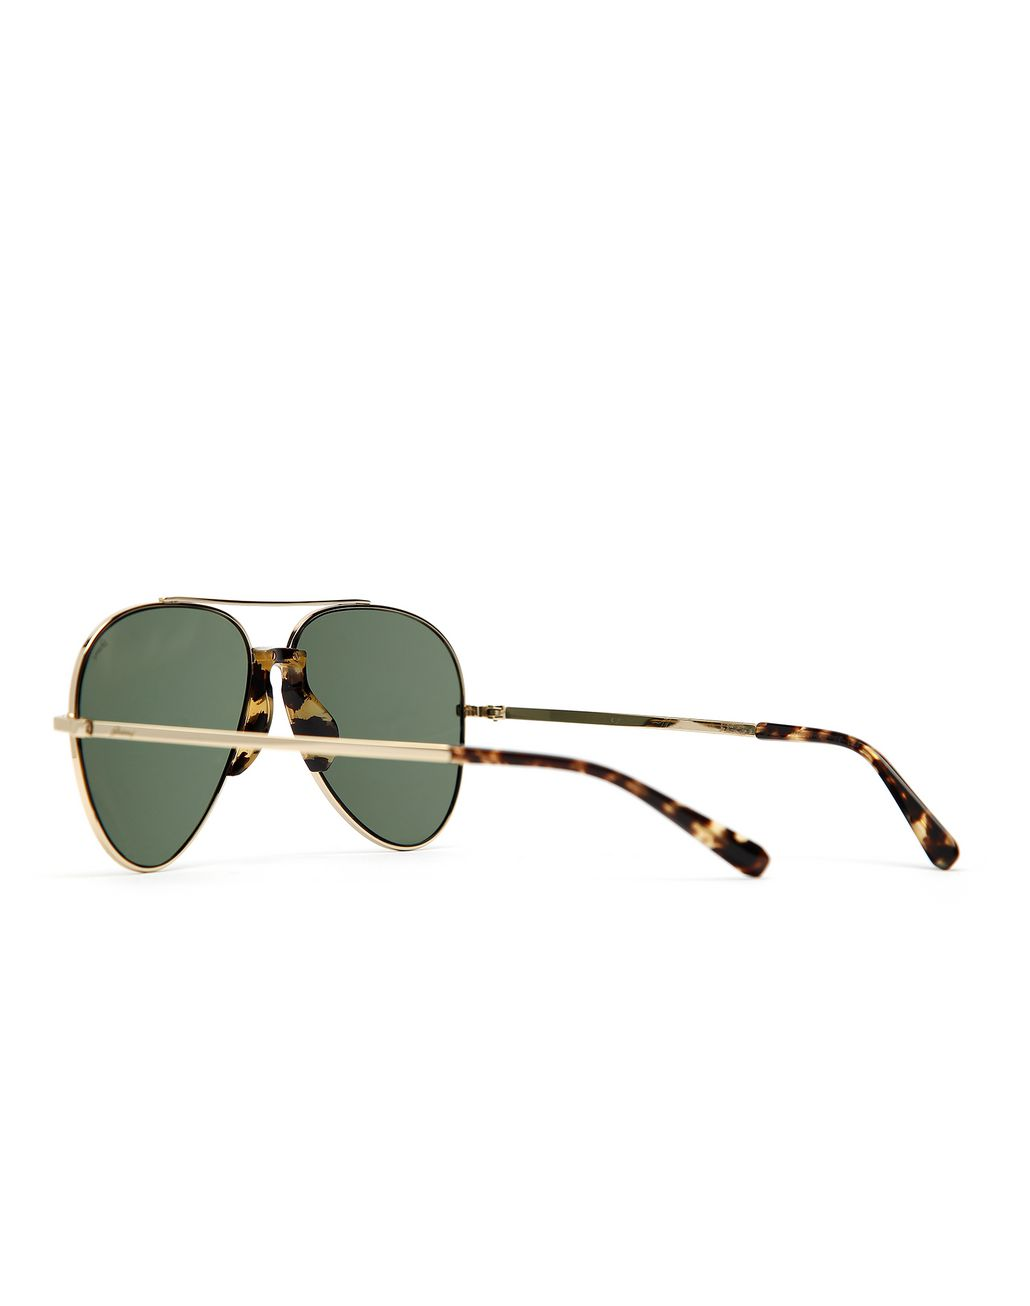 BRIONI Gold and Havana Pilot Sunglasses with Green Lenses Sunglasses Man d